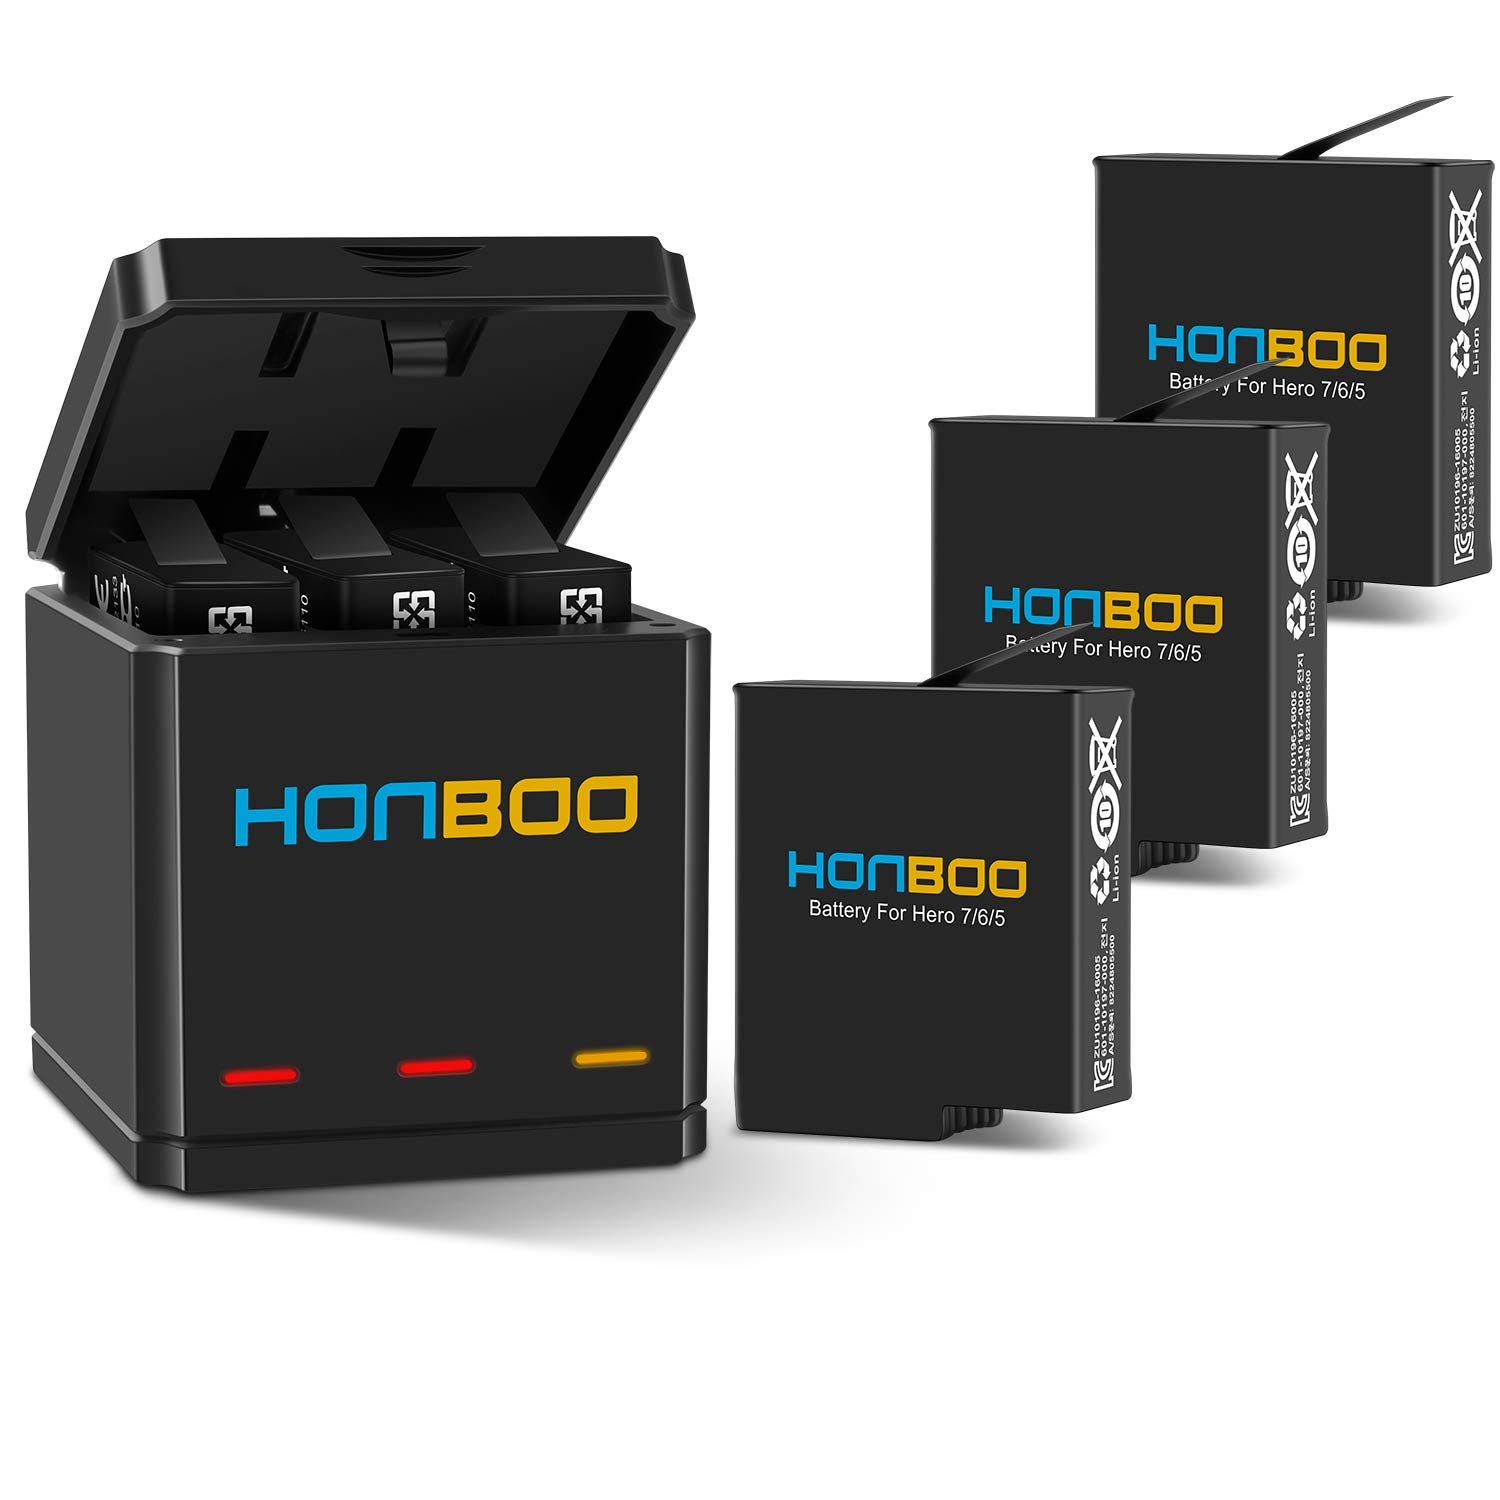 HONBOO Batteries (3-Pack) and Triple Charger for GoPro Hero 7/6/5 Black,Rechargeable Battery Accessories for GoPro Camera